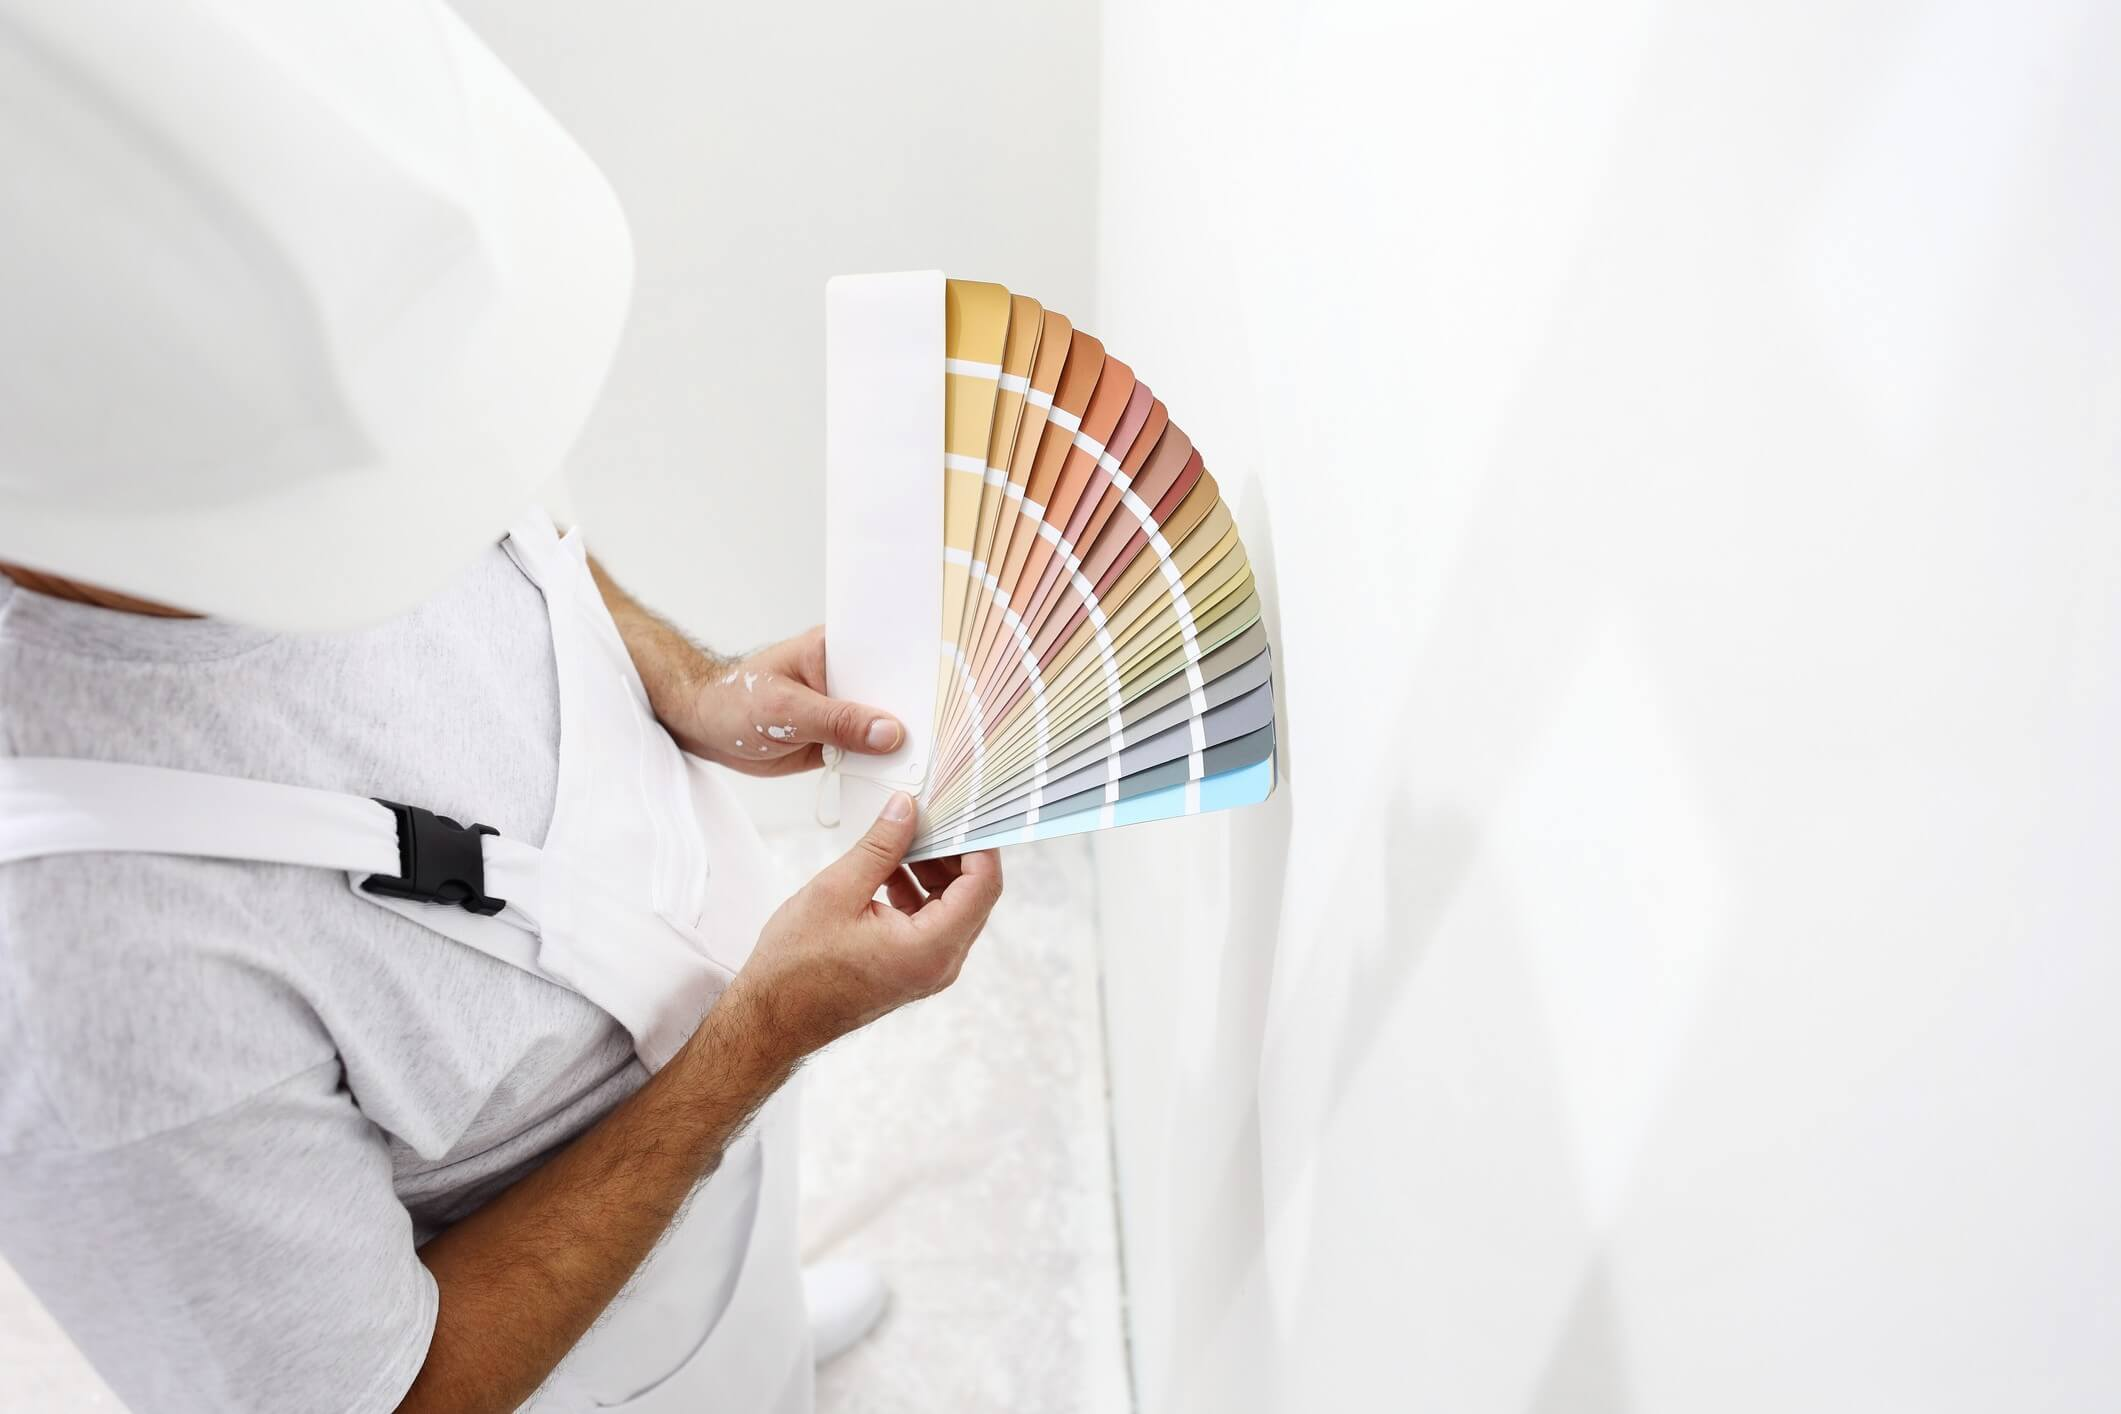 4 Small Paint Projects House Painters Can Take on To Give Your Home a Major Facelift